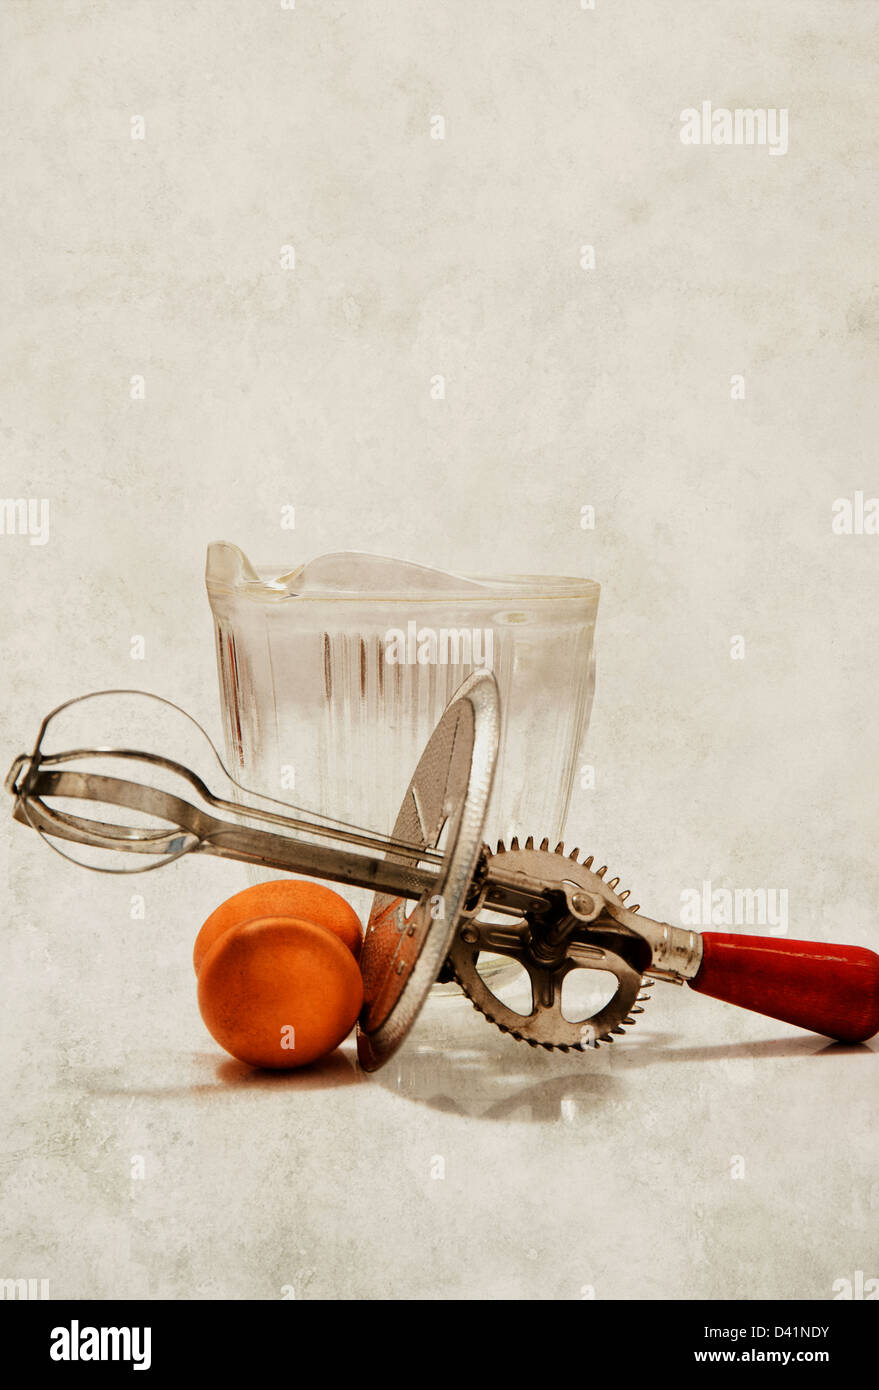 Old fashioned hand food mixer or beater beside eggs - Stock Image